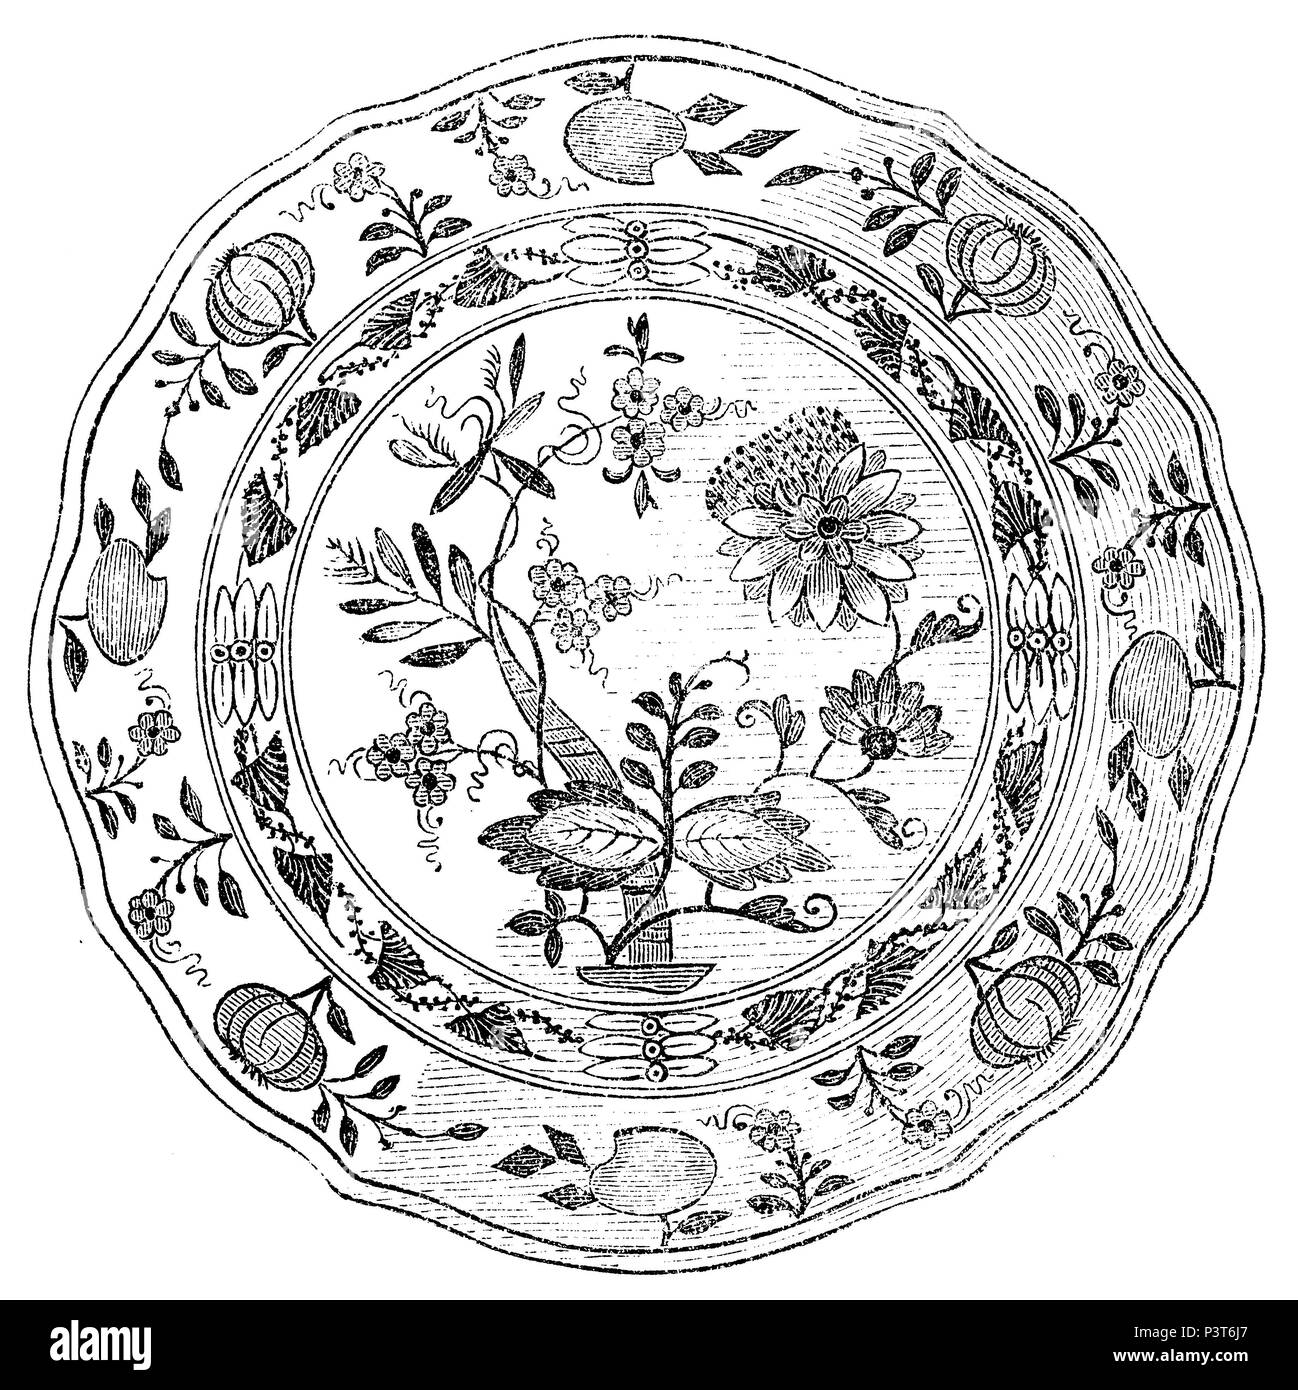 Plate with 'onion pattern'. Meissen Porcelain. The onion pattern, showing blue flowers and fruits, twigs and tendrils on a white background, is one of the most successful porcelain decors of all time. Developed according to Chinese models, it was already manufactured by the porcelain manufacturer Meissen in 1730 and since then has been adopted by many porcelain manufacturers.,   1872 - Stock Image